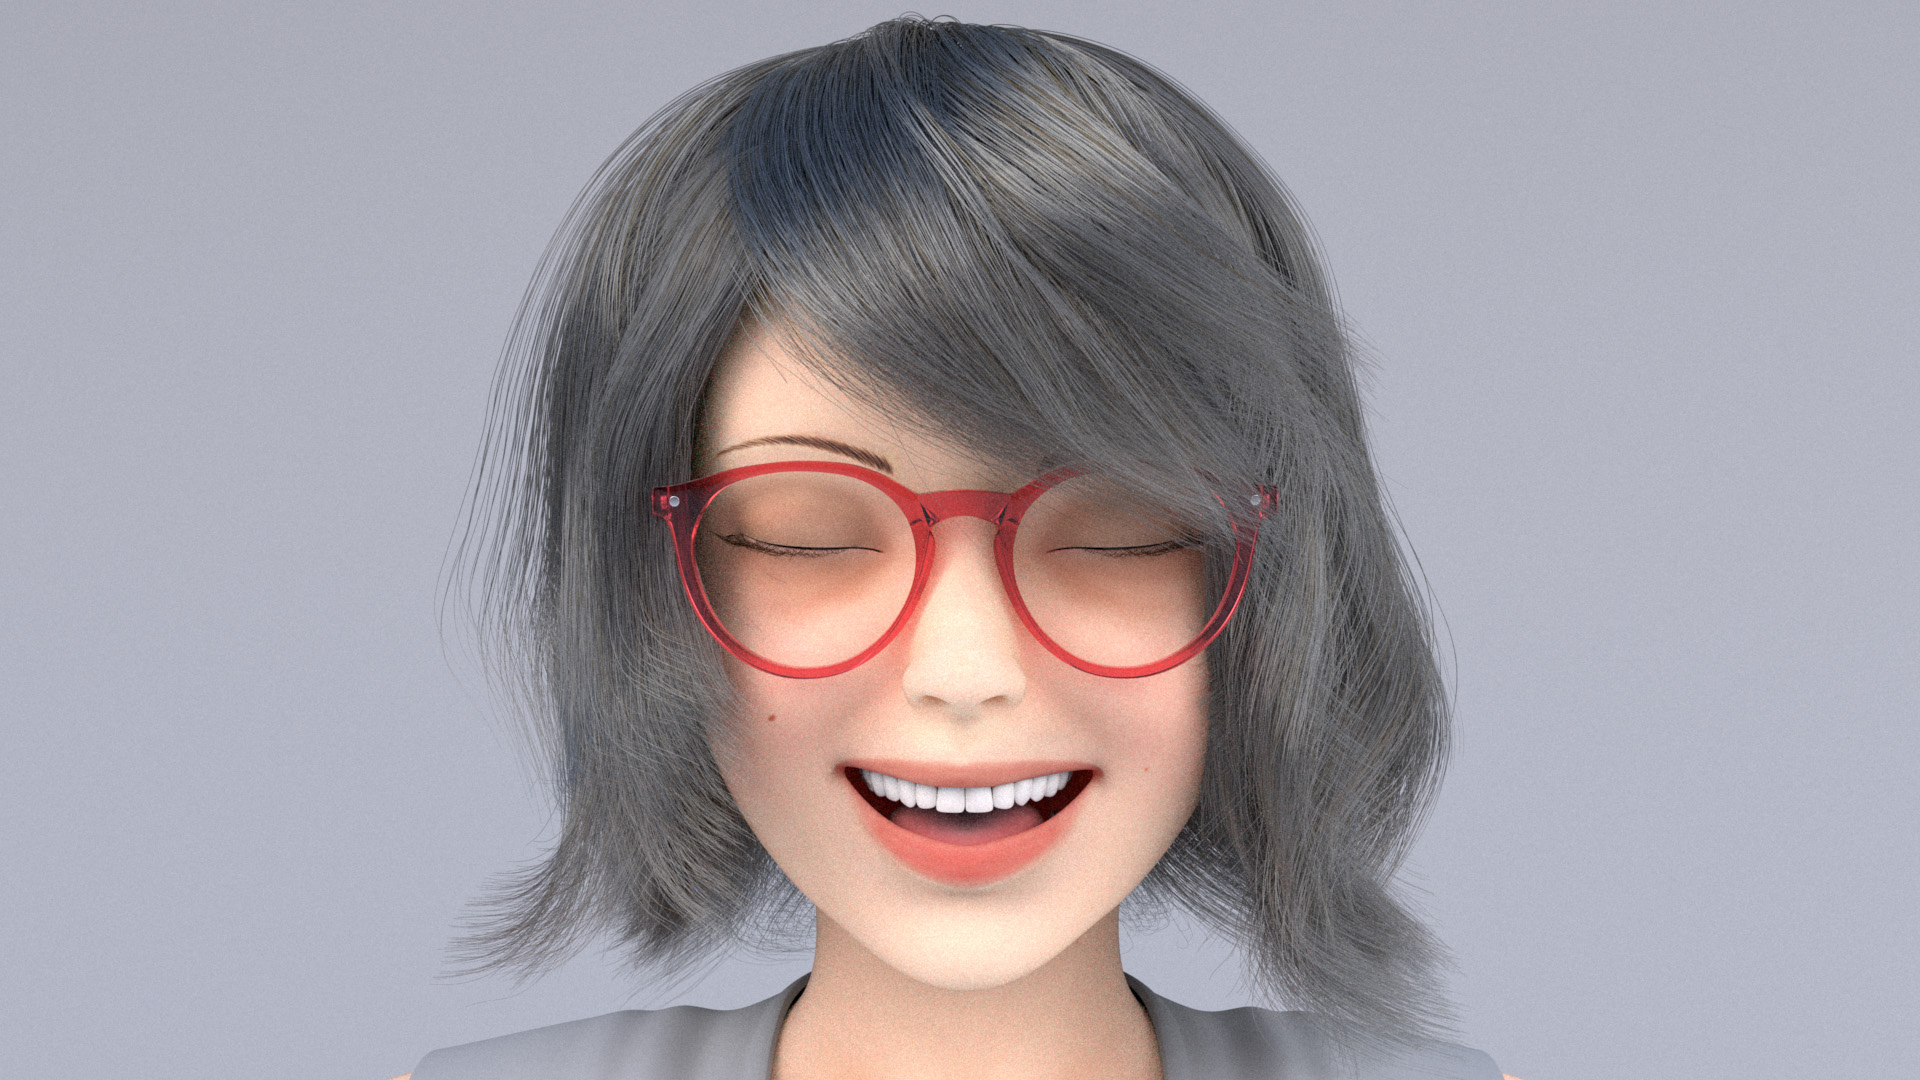 Figure 4: More progressed iteration of a custom hair groom for the character, with final glasses.